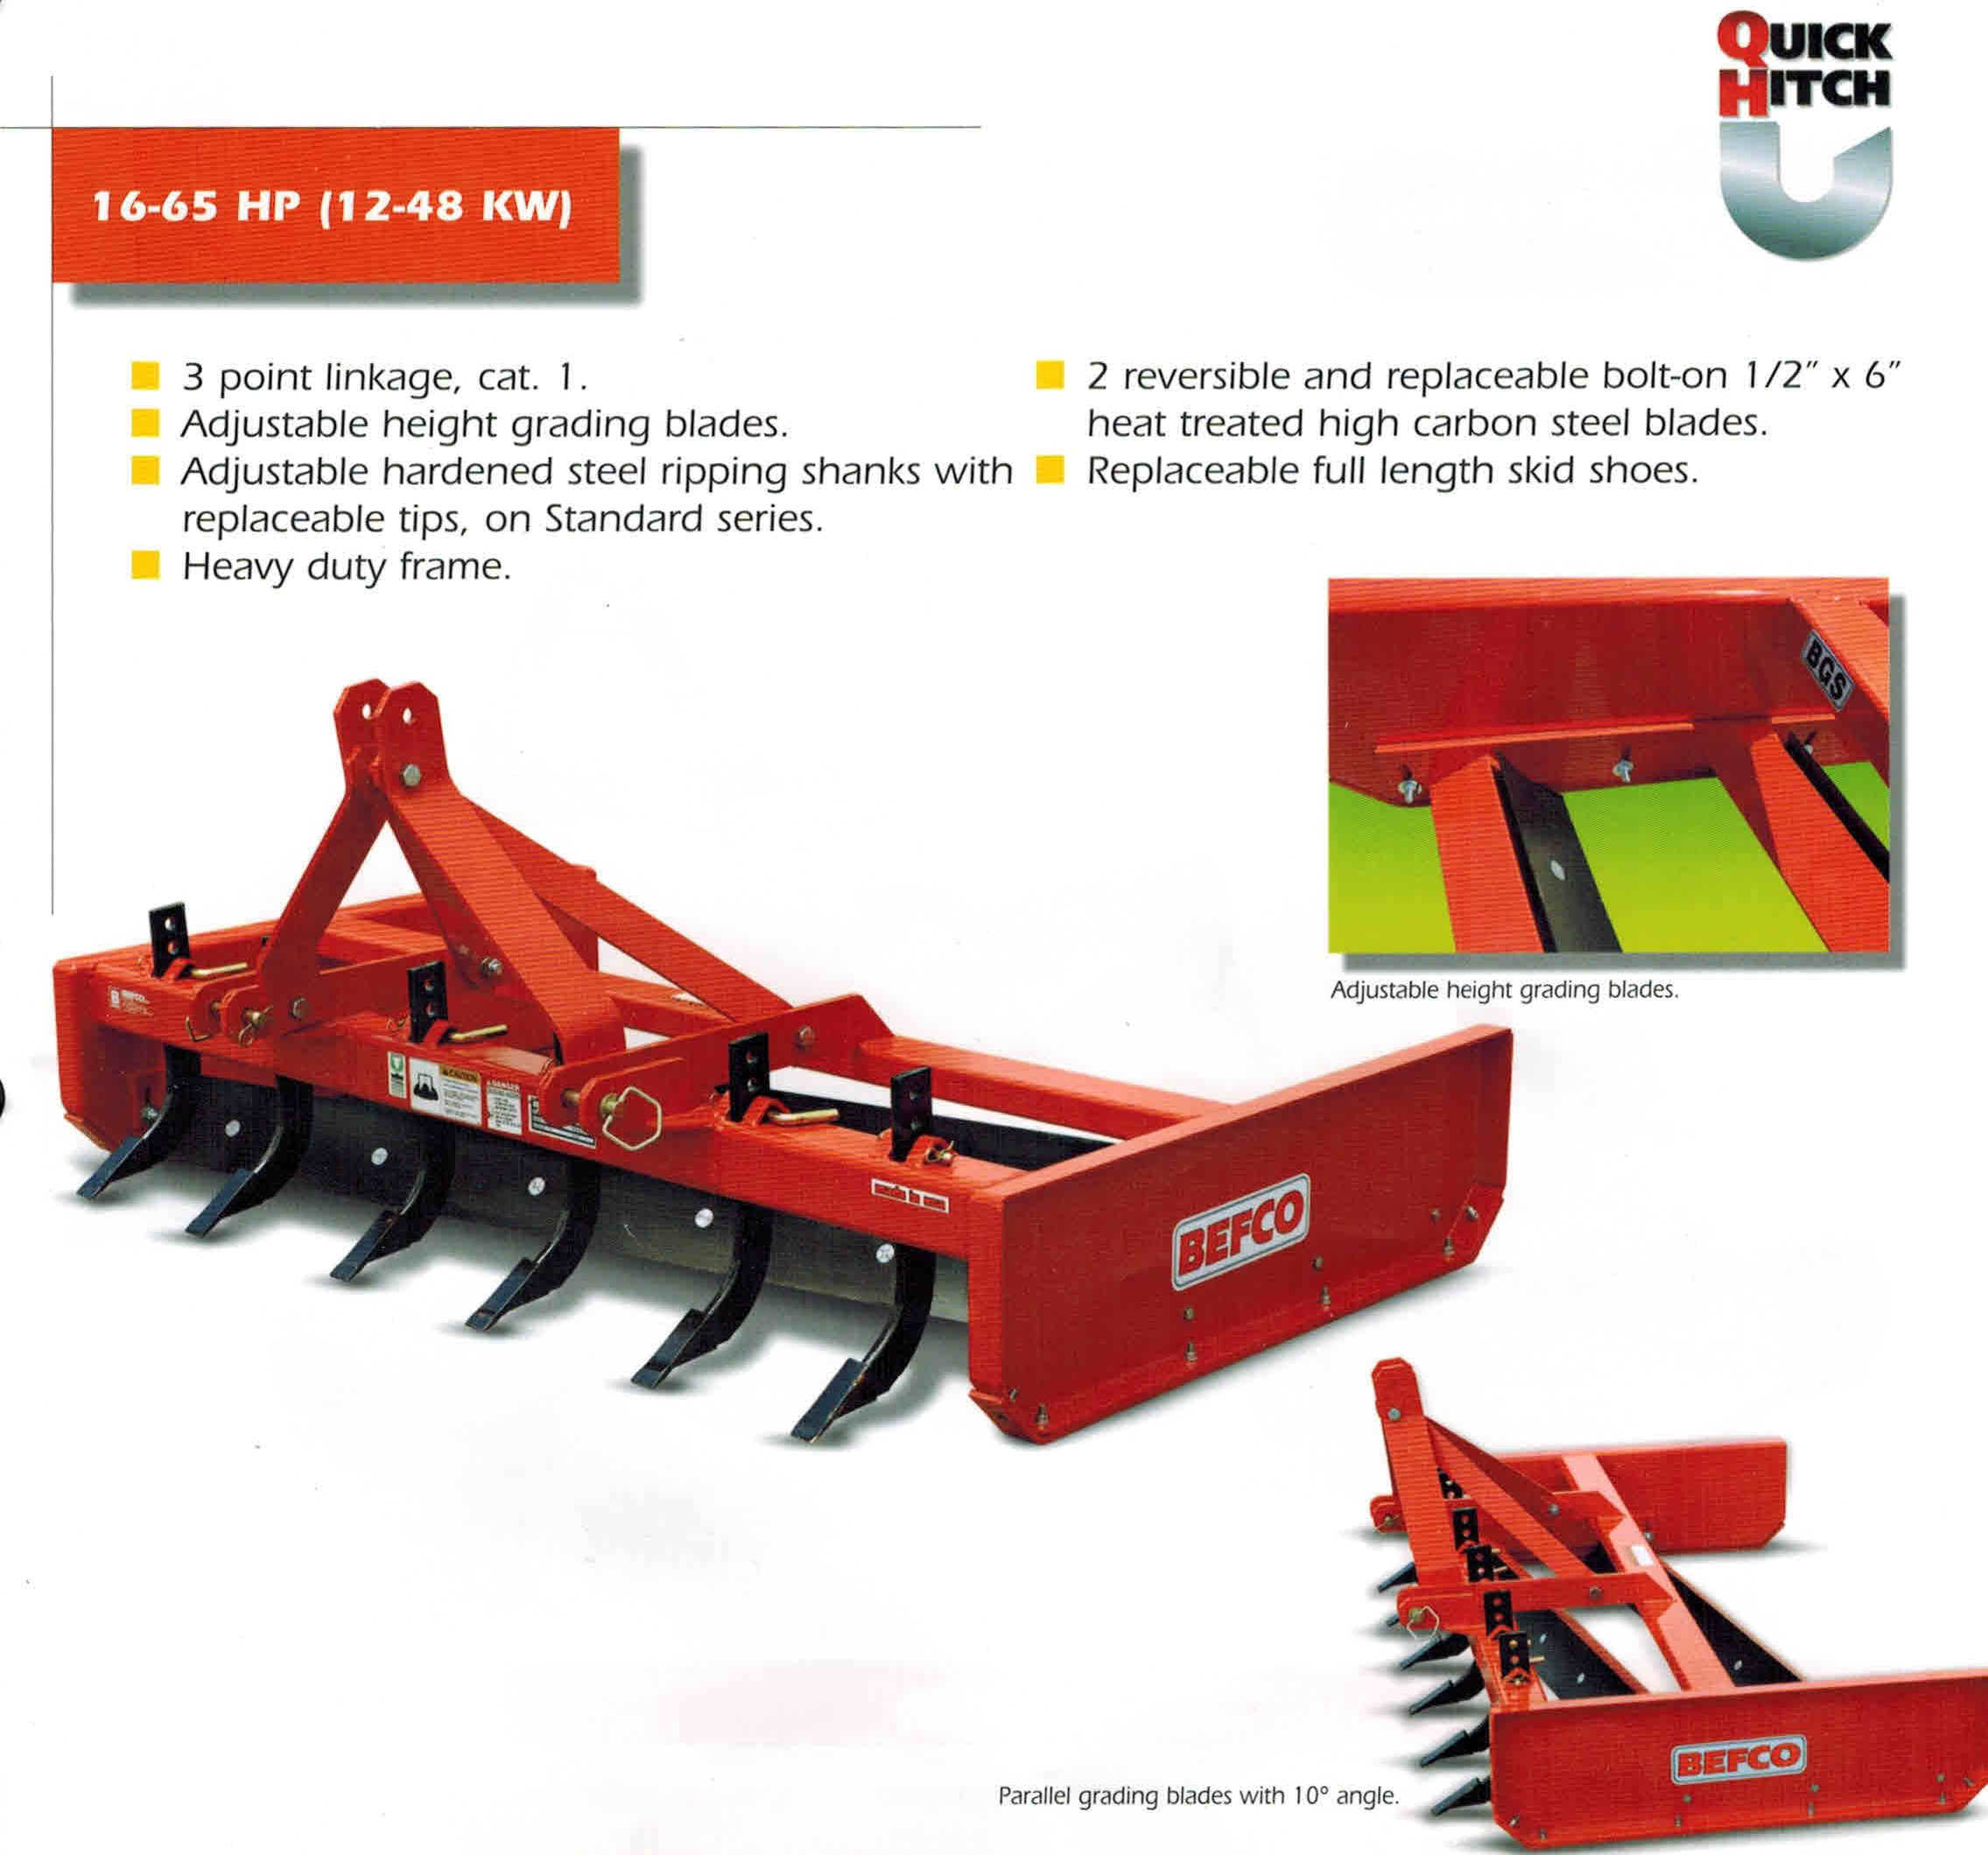 Tractor Mounted Grading Scraper For Tractors 16 To 65 HP